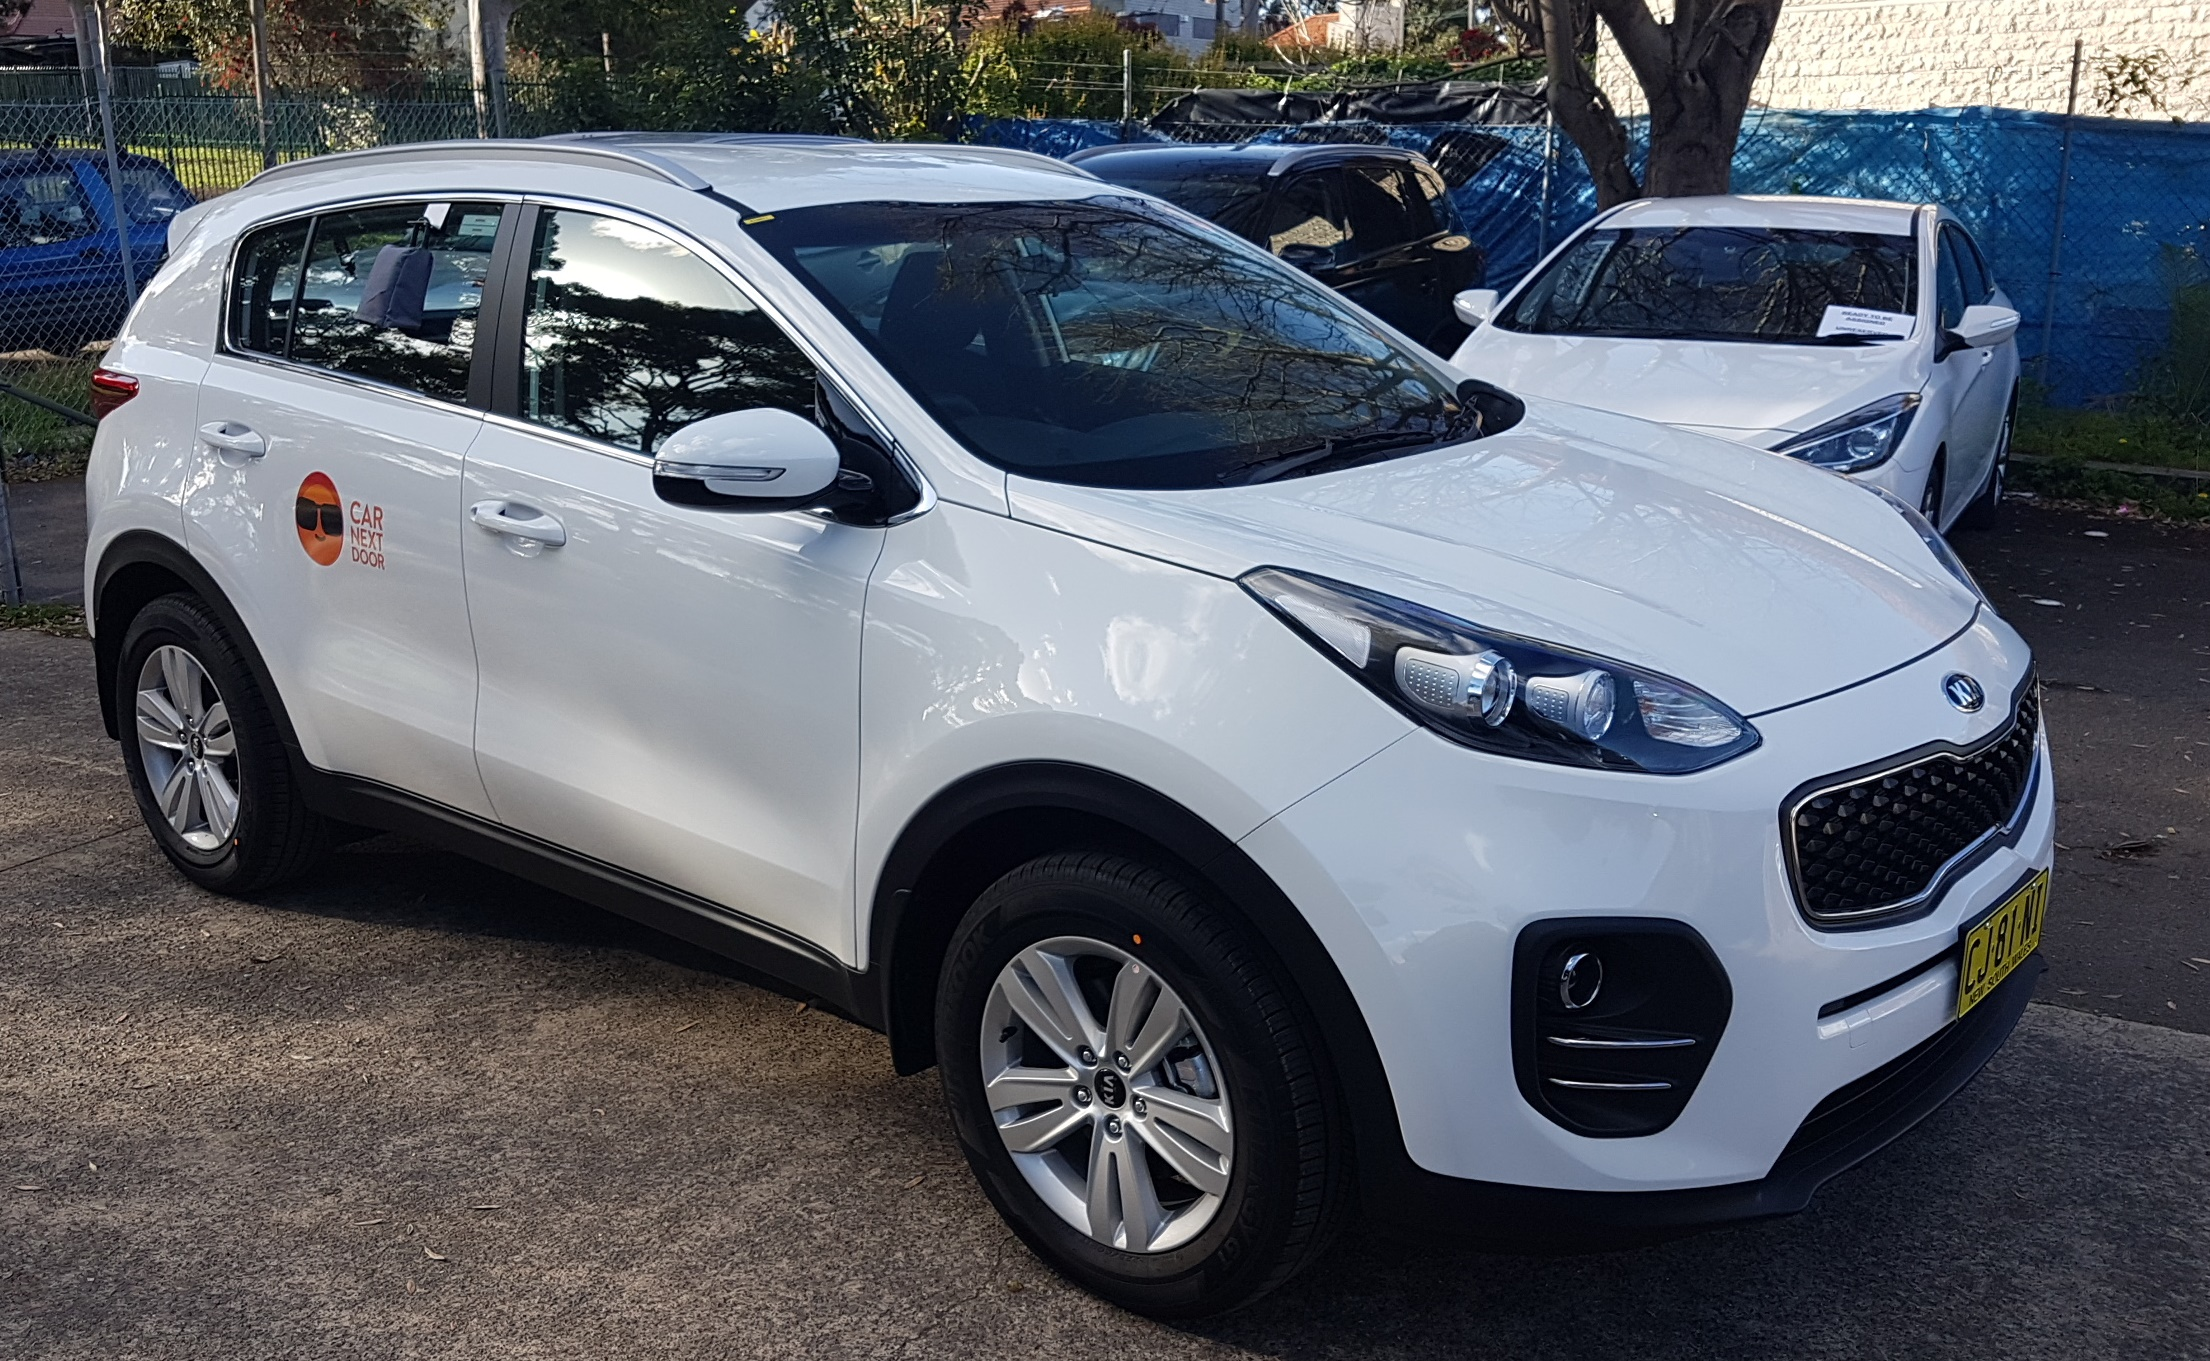 Picture of Anselm's 2016 Kia Sportage